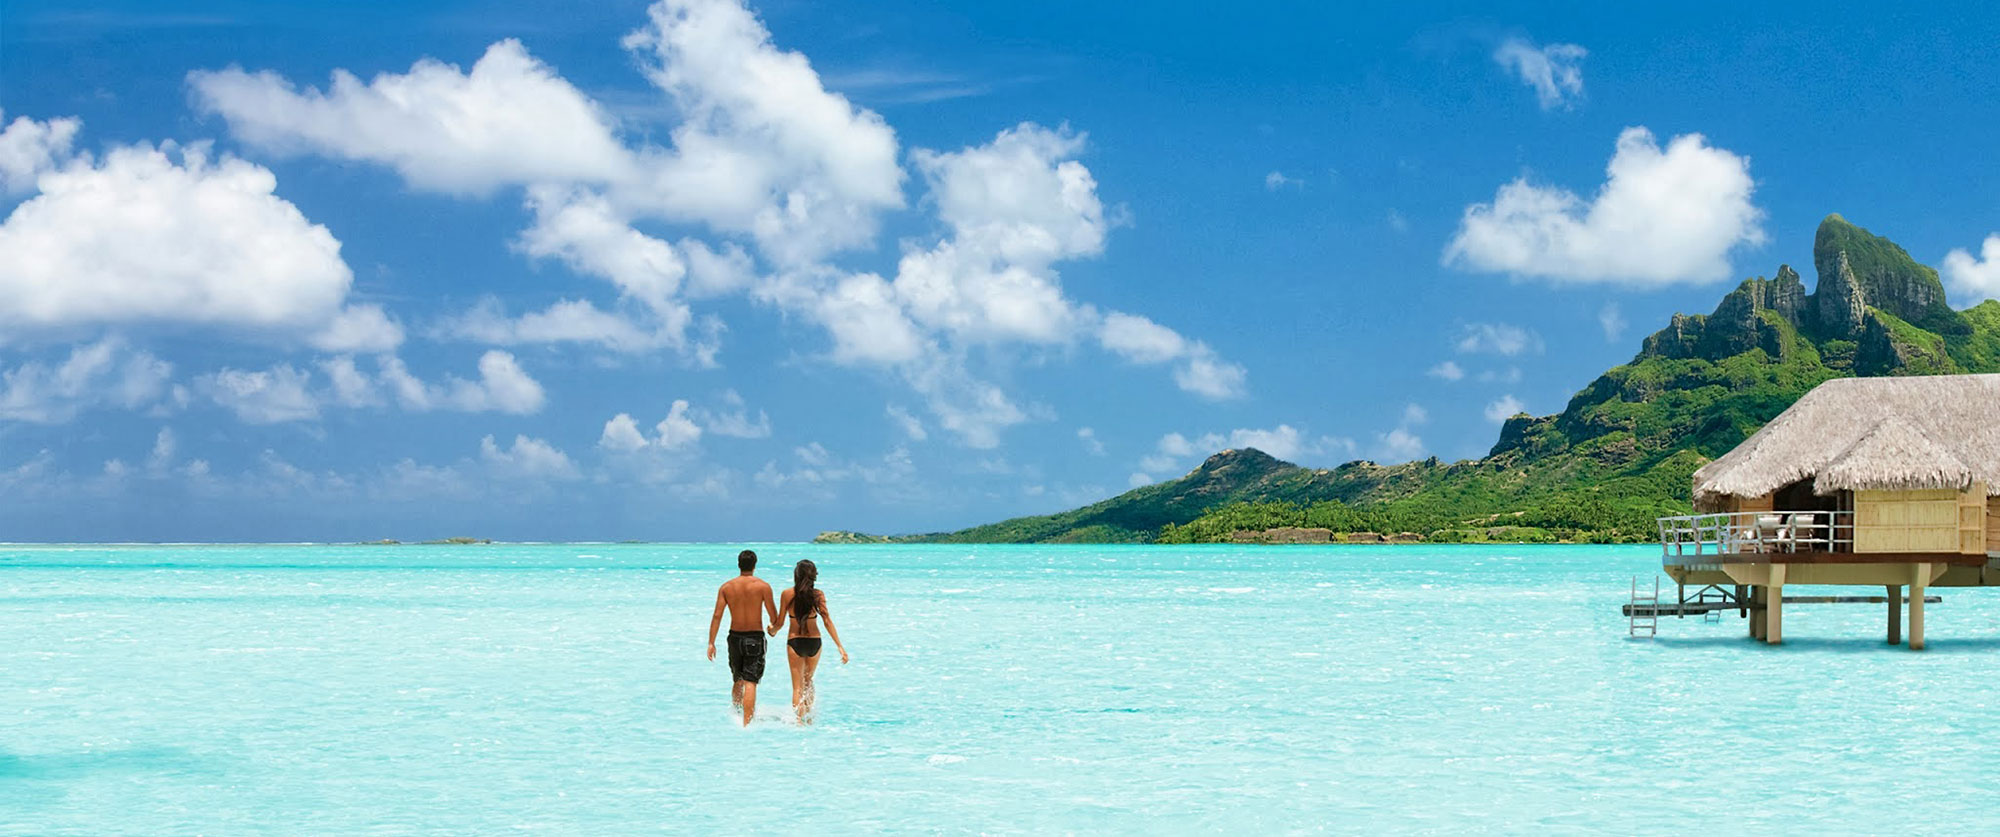 Tahiti Honeymoon Vacation Packages, Overwater Bungalows in Bora Bora